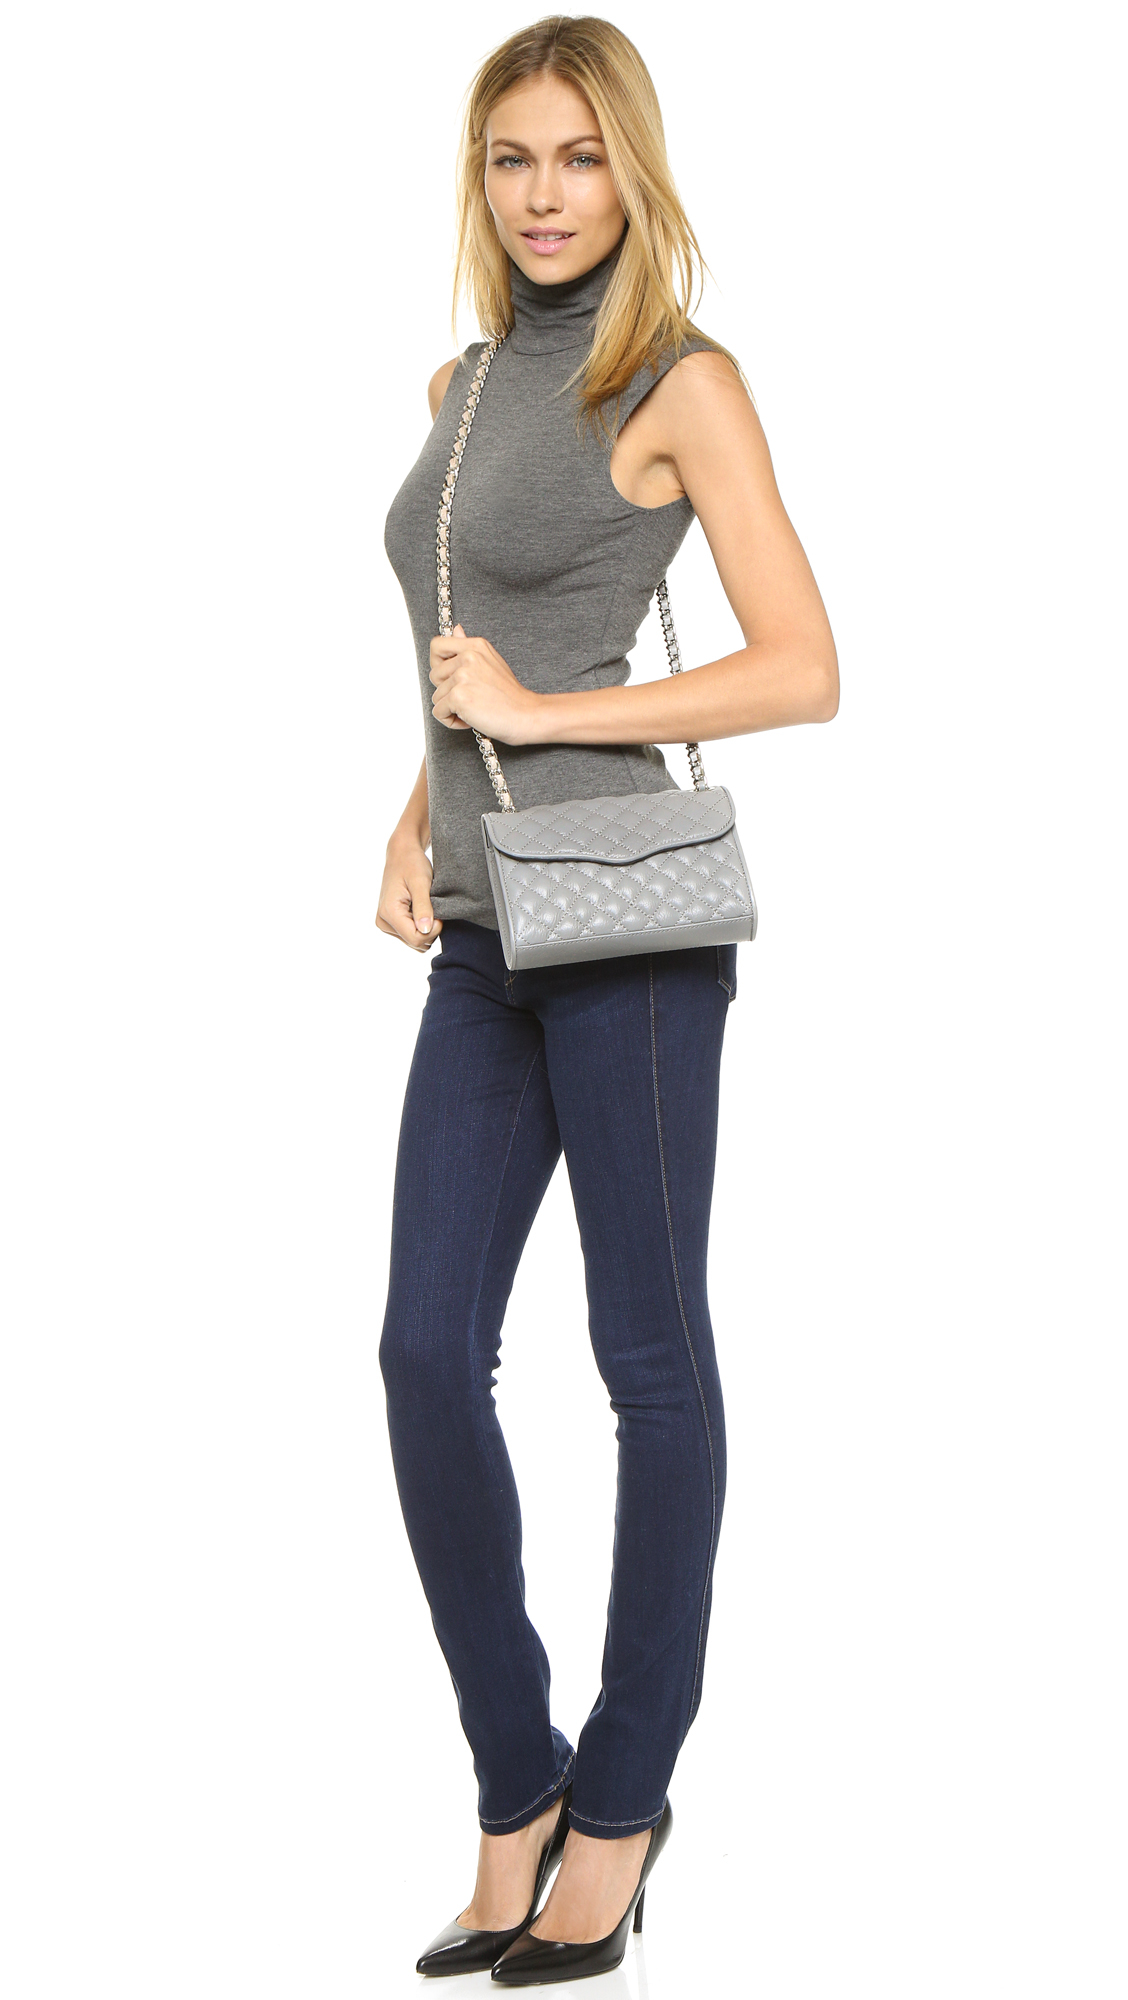 rebecca rm mini black with studs minkoff quilt affair quilted pin